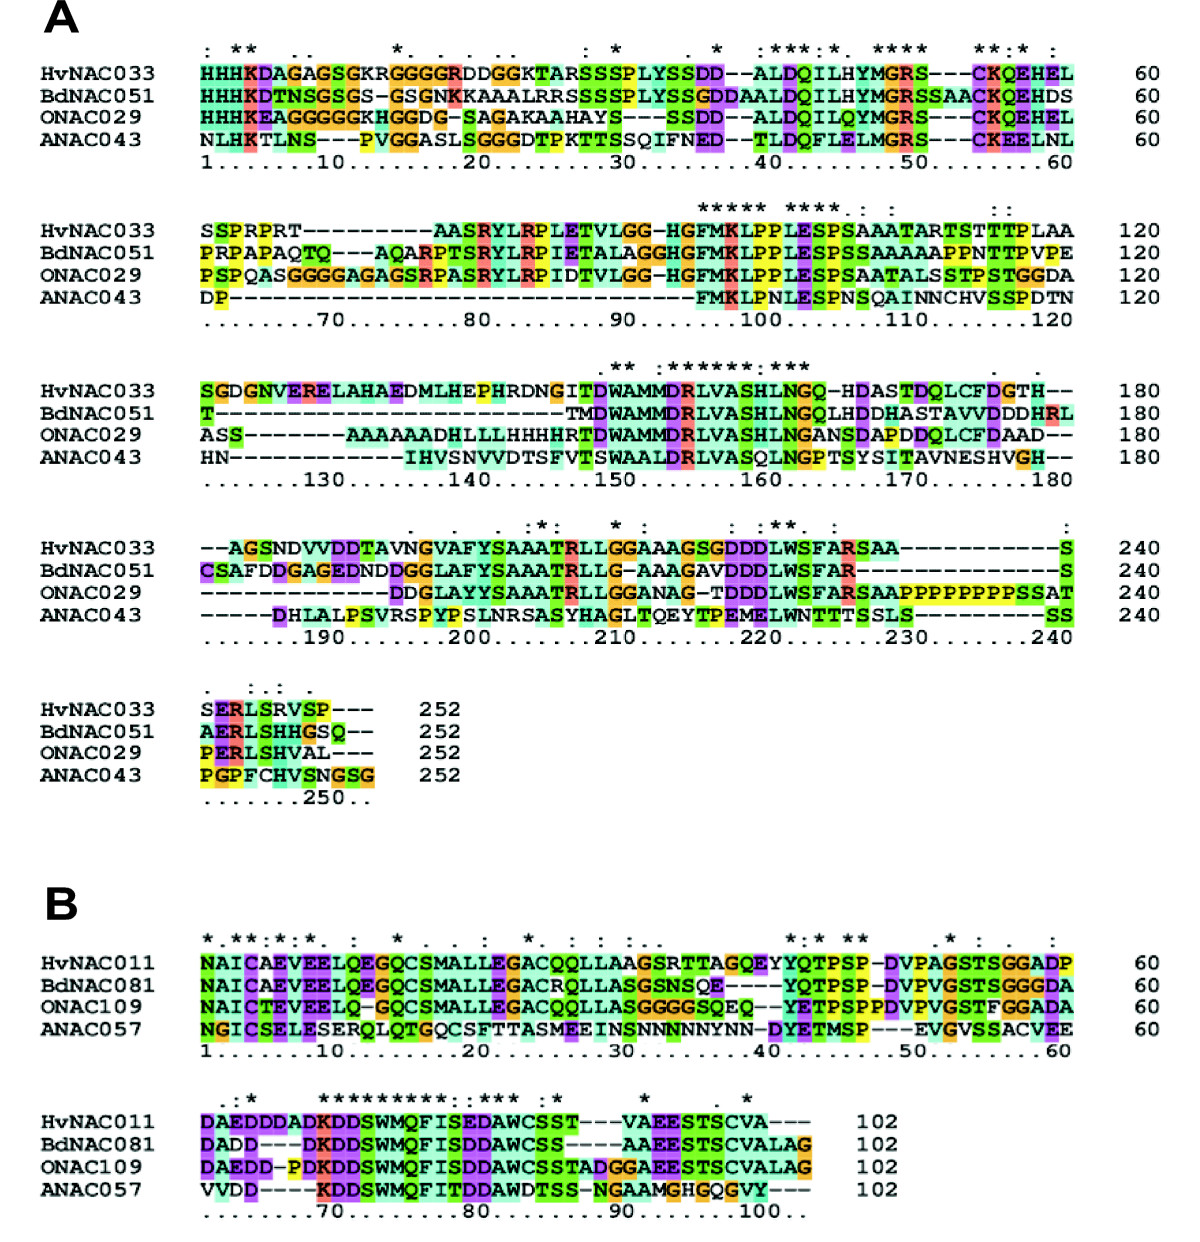 https://static-content.springer.com/image/art%3A10.1186%2F1756-0500-4-302/MediaObjects/13104_2011_Article_1055_Fig2_HTML.jpg